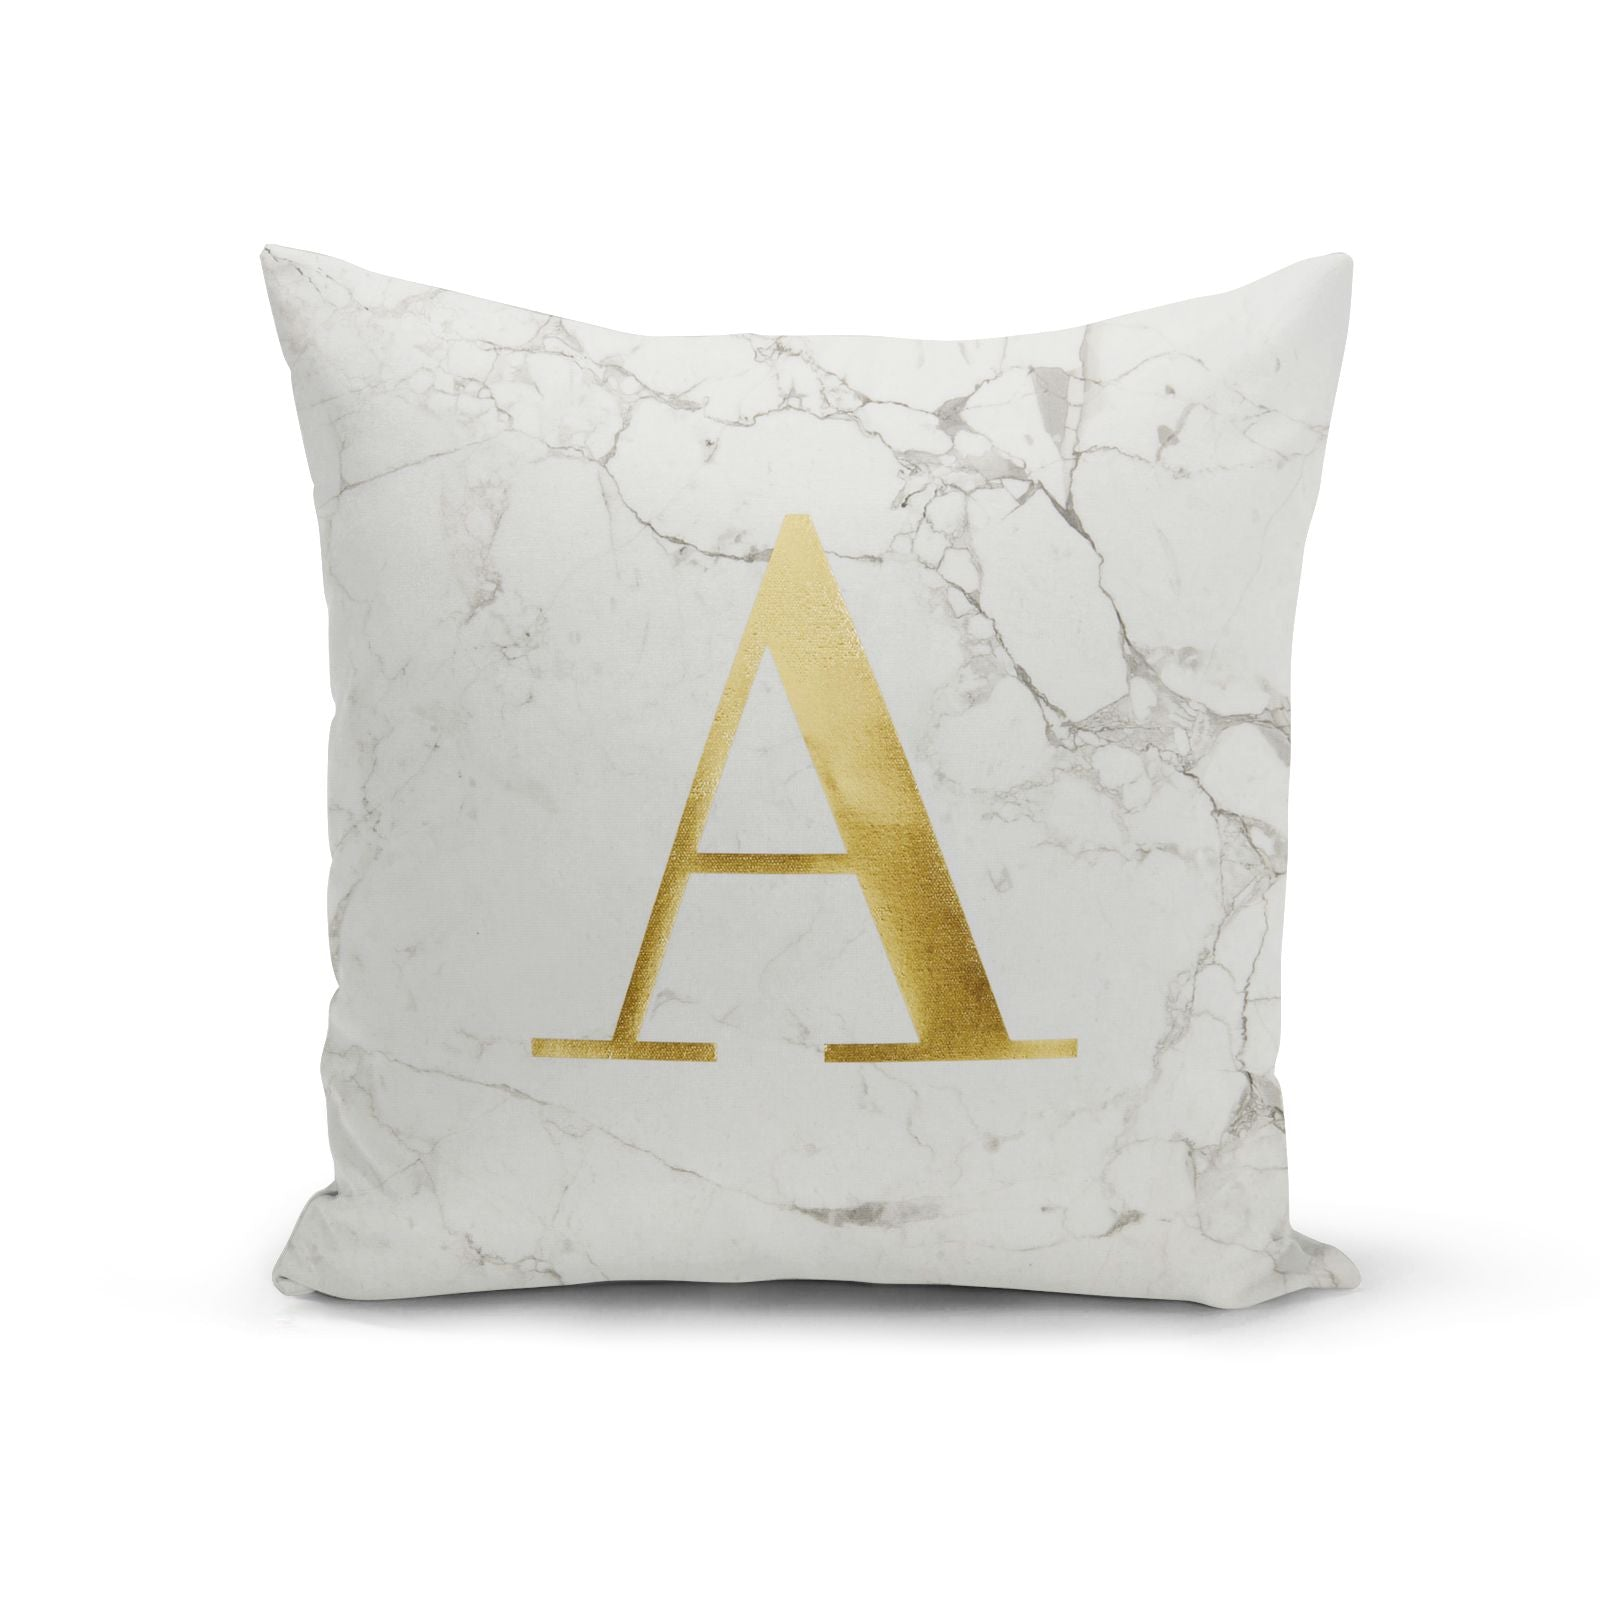 Personalised White Marble Gold Foil Cushion Cotton Cushion